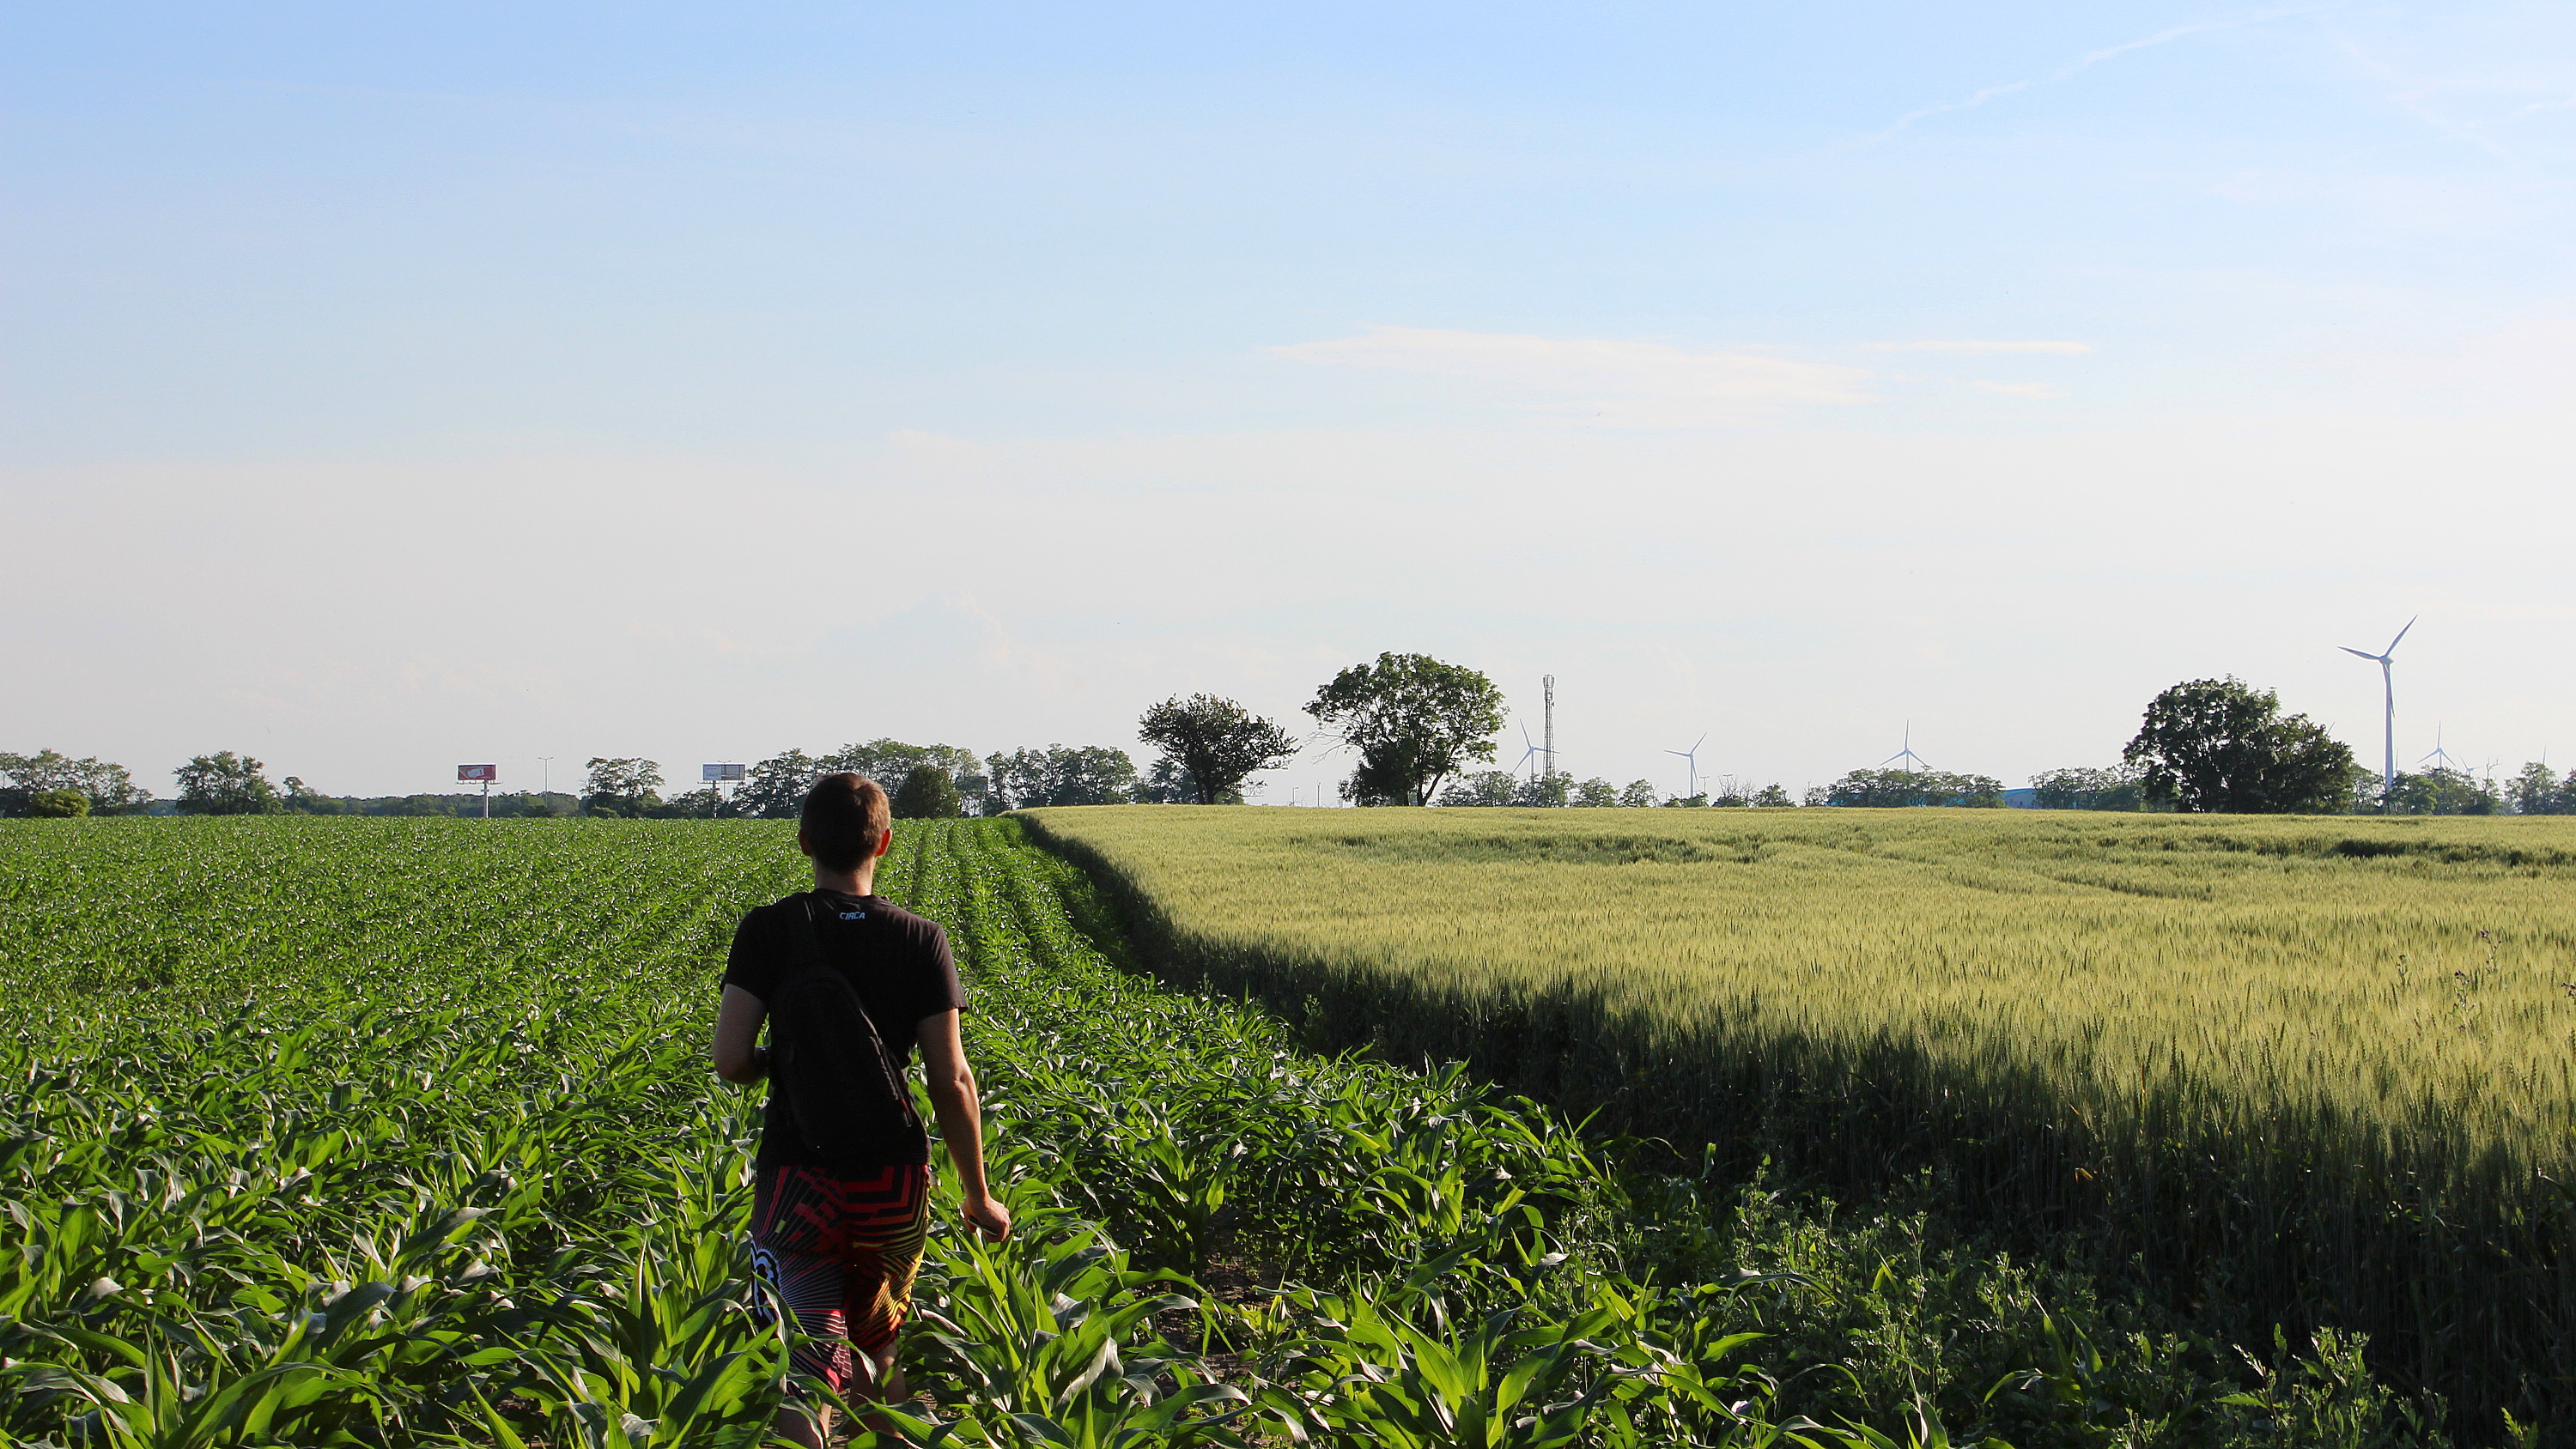 A man walking to the horizon on a corn field during sunset.